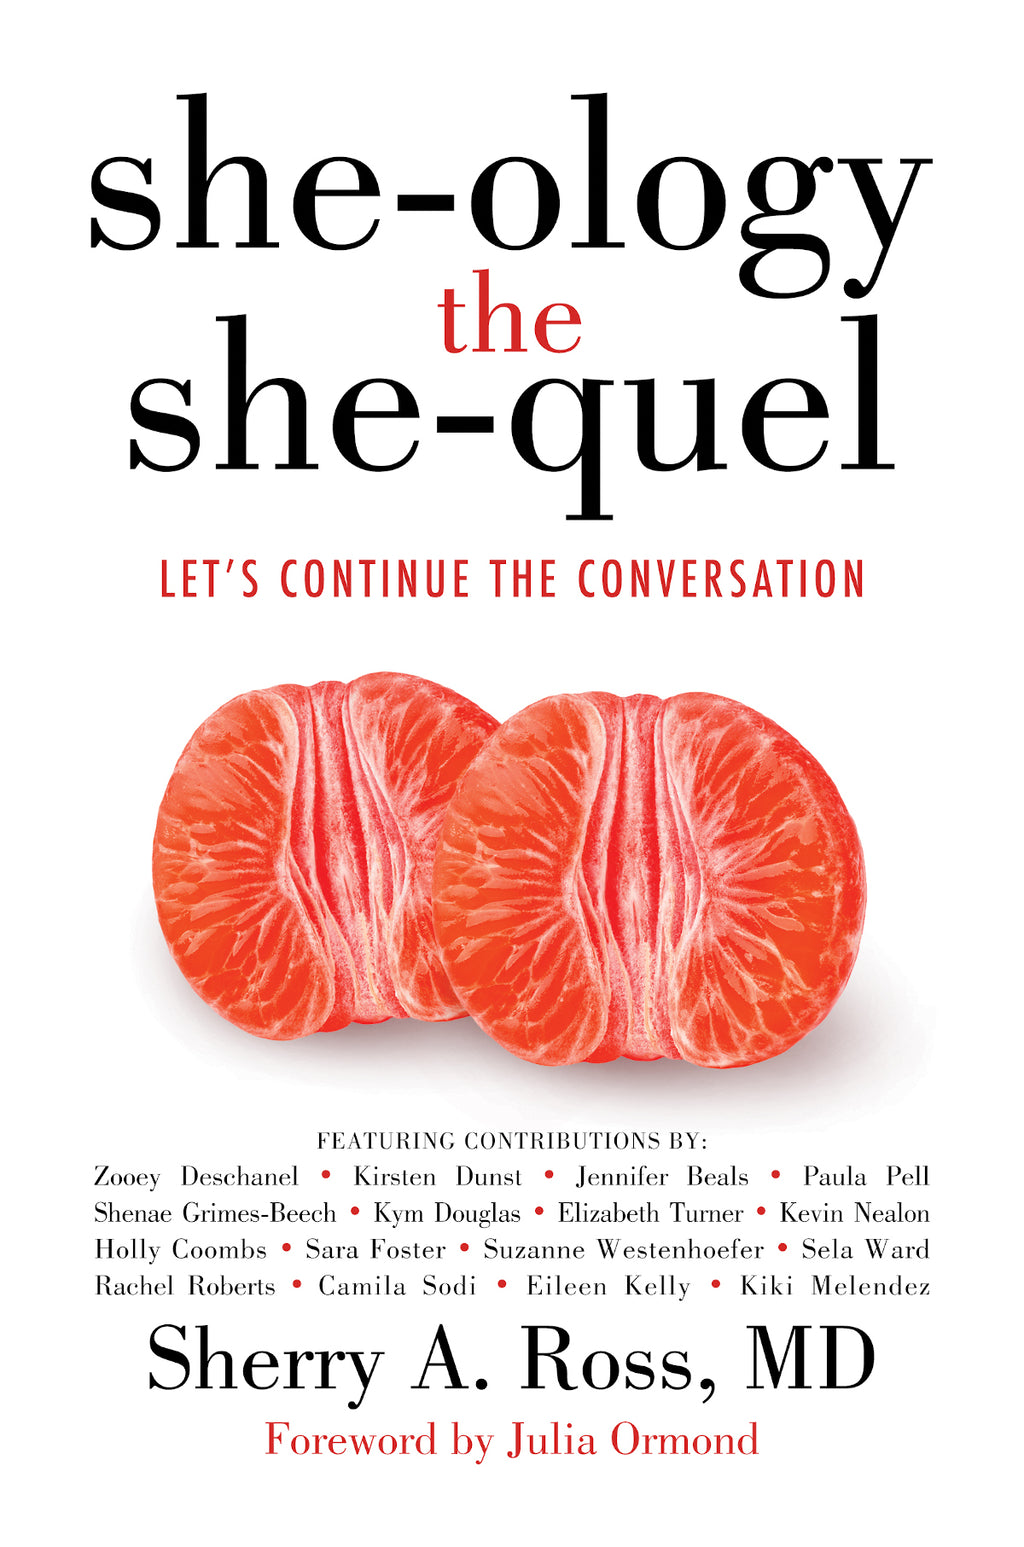 She-ology The Sequel - Simon & Schuster